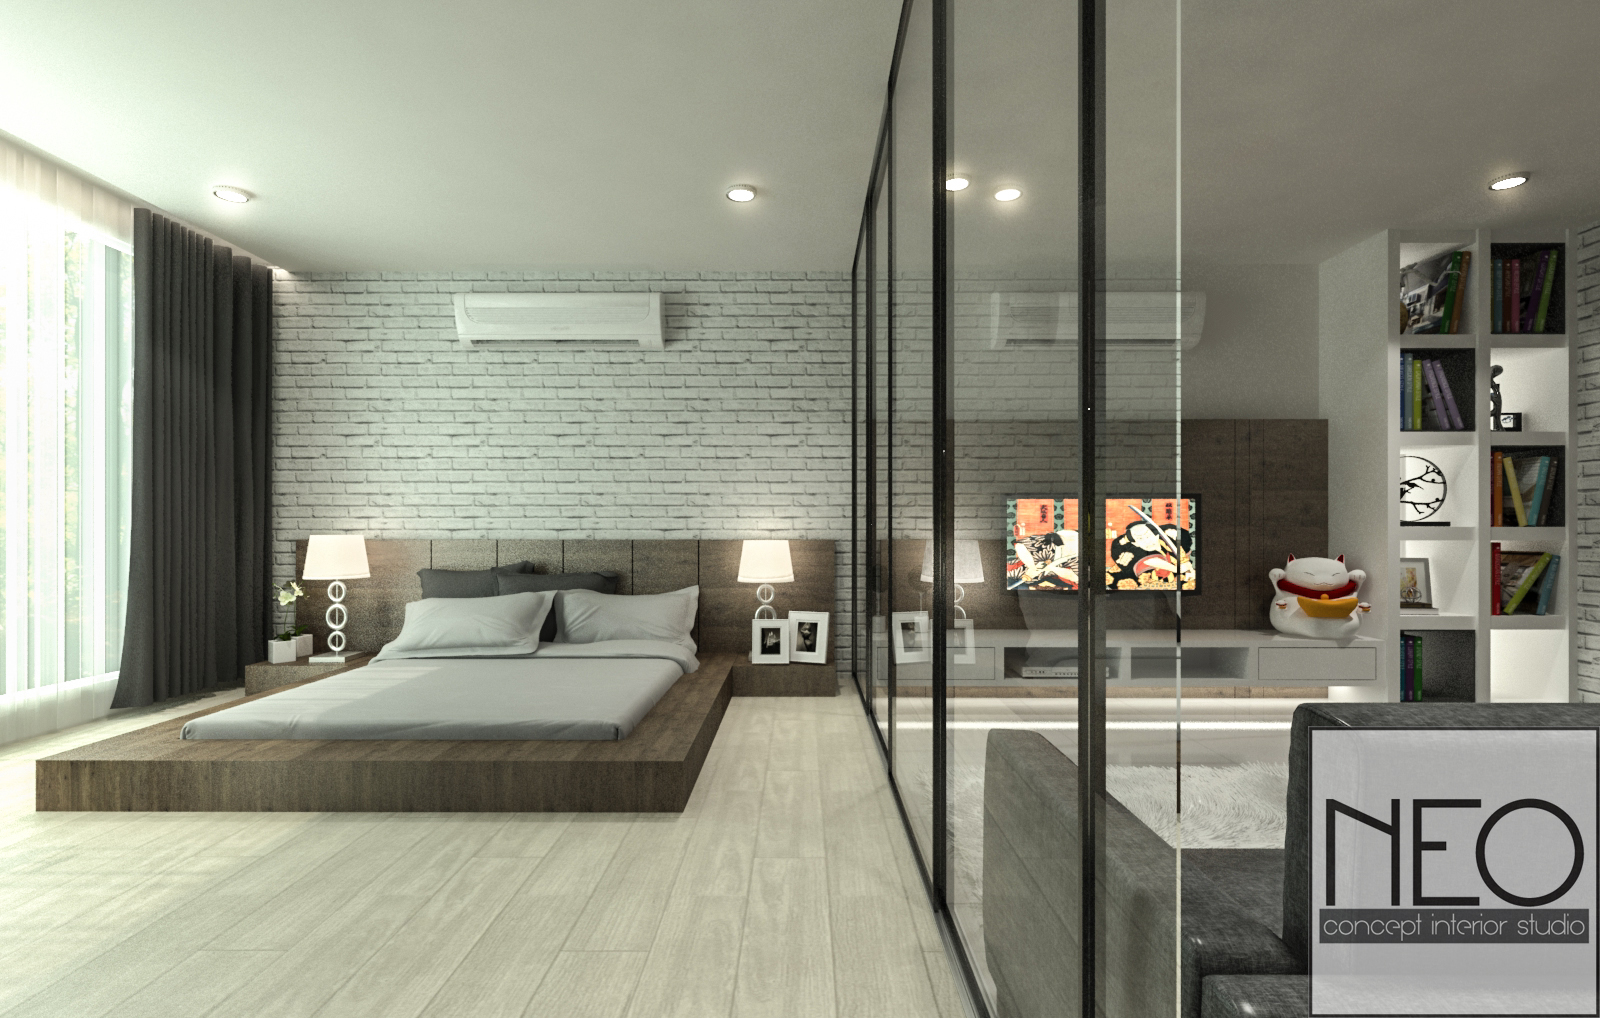 neo concept interior studio renof find a professional. Black Bedroom Furniture Sets. Home Design Ideas